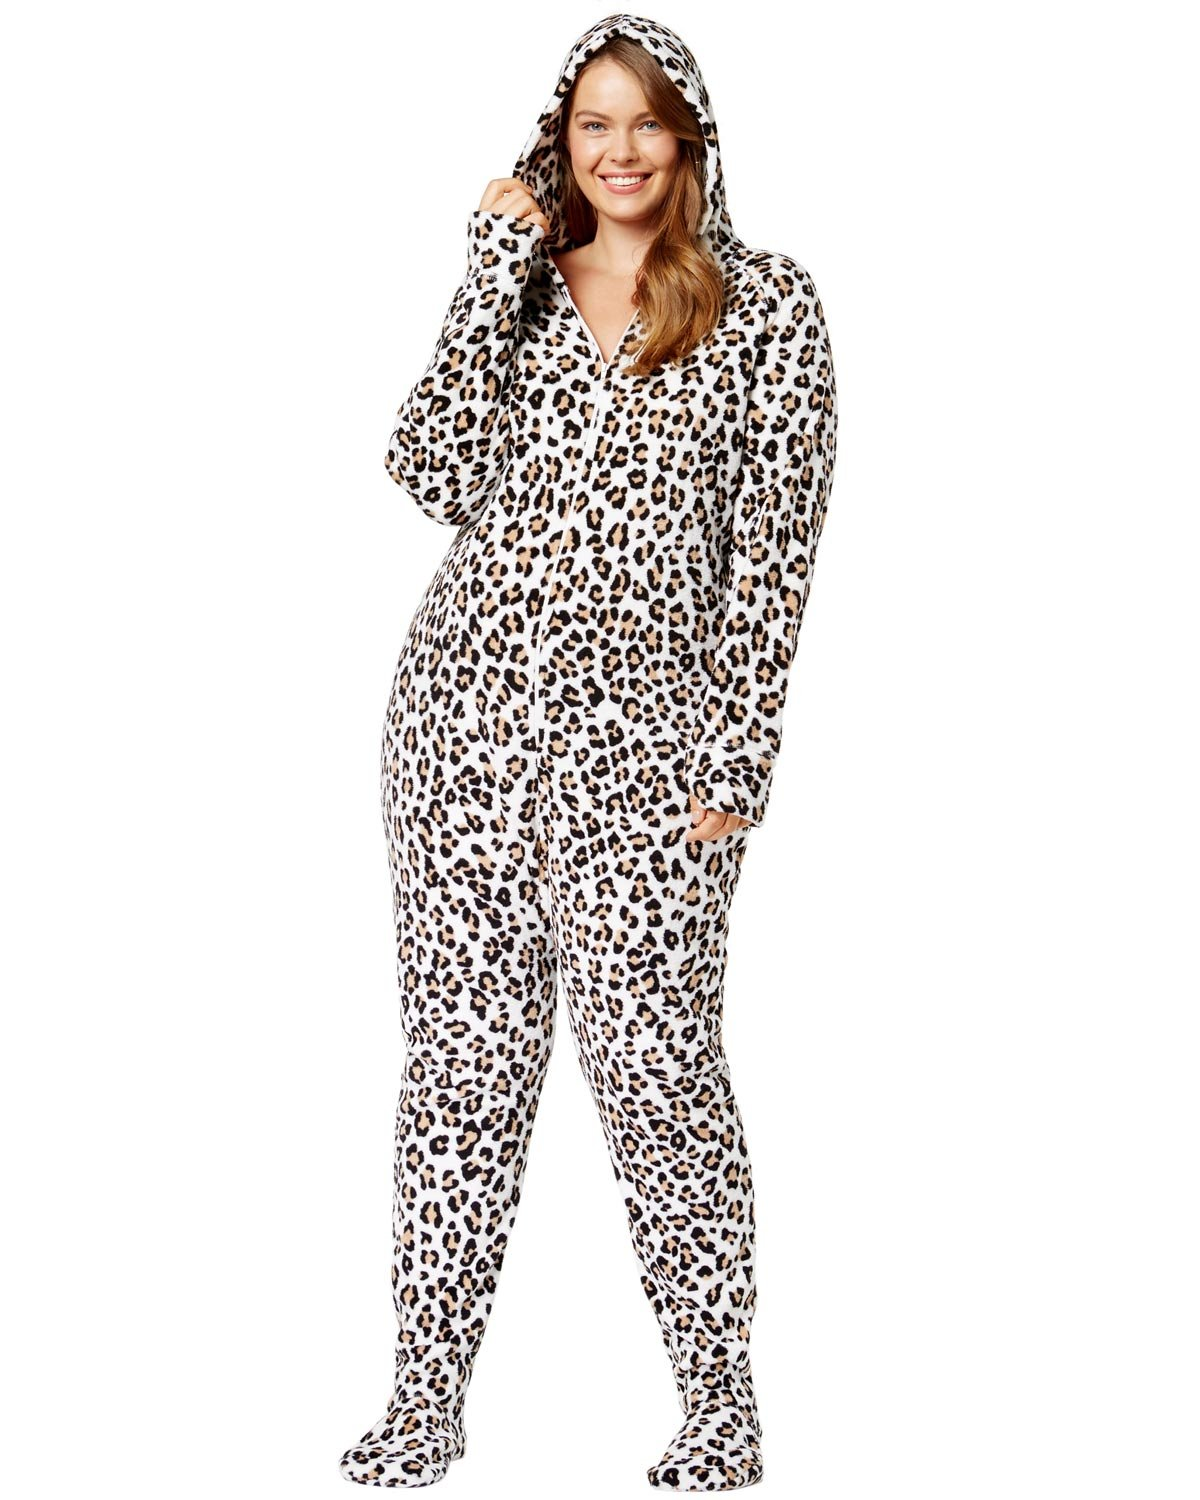 Jenni by Jennifer Moore Plus Size Hooded Printed Footed Jumpsuit 2X Leopard